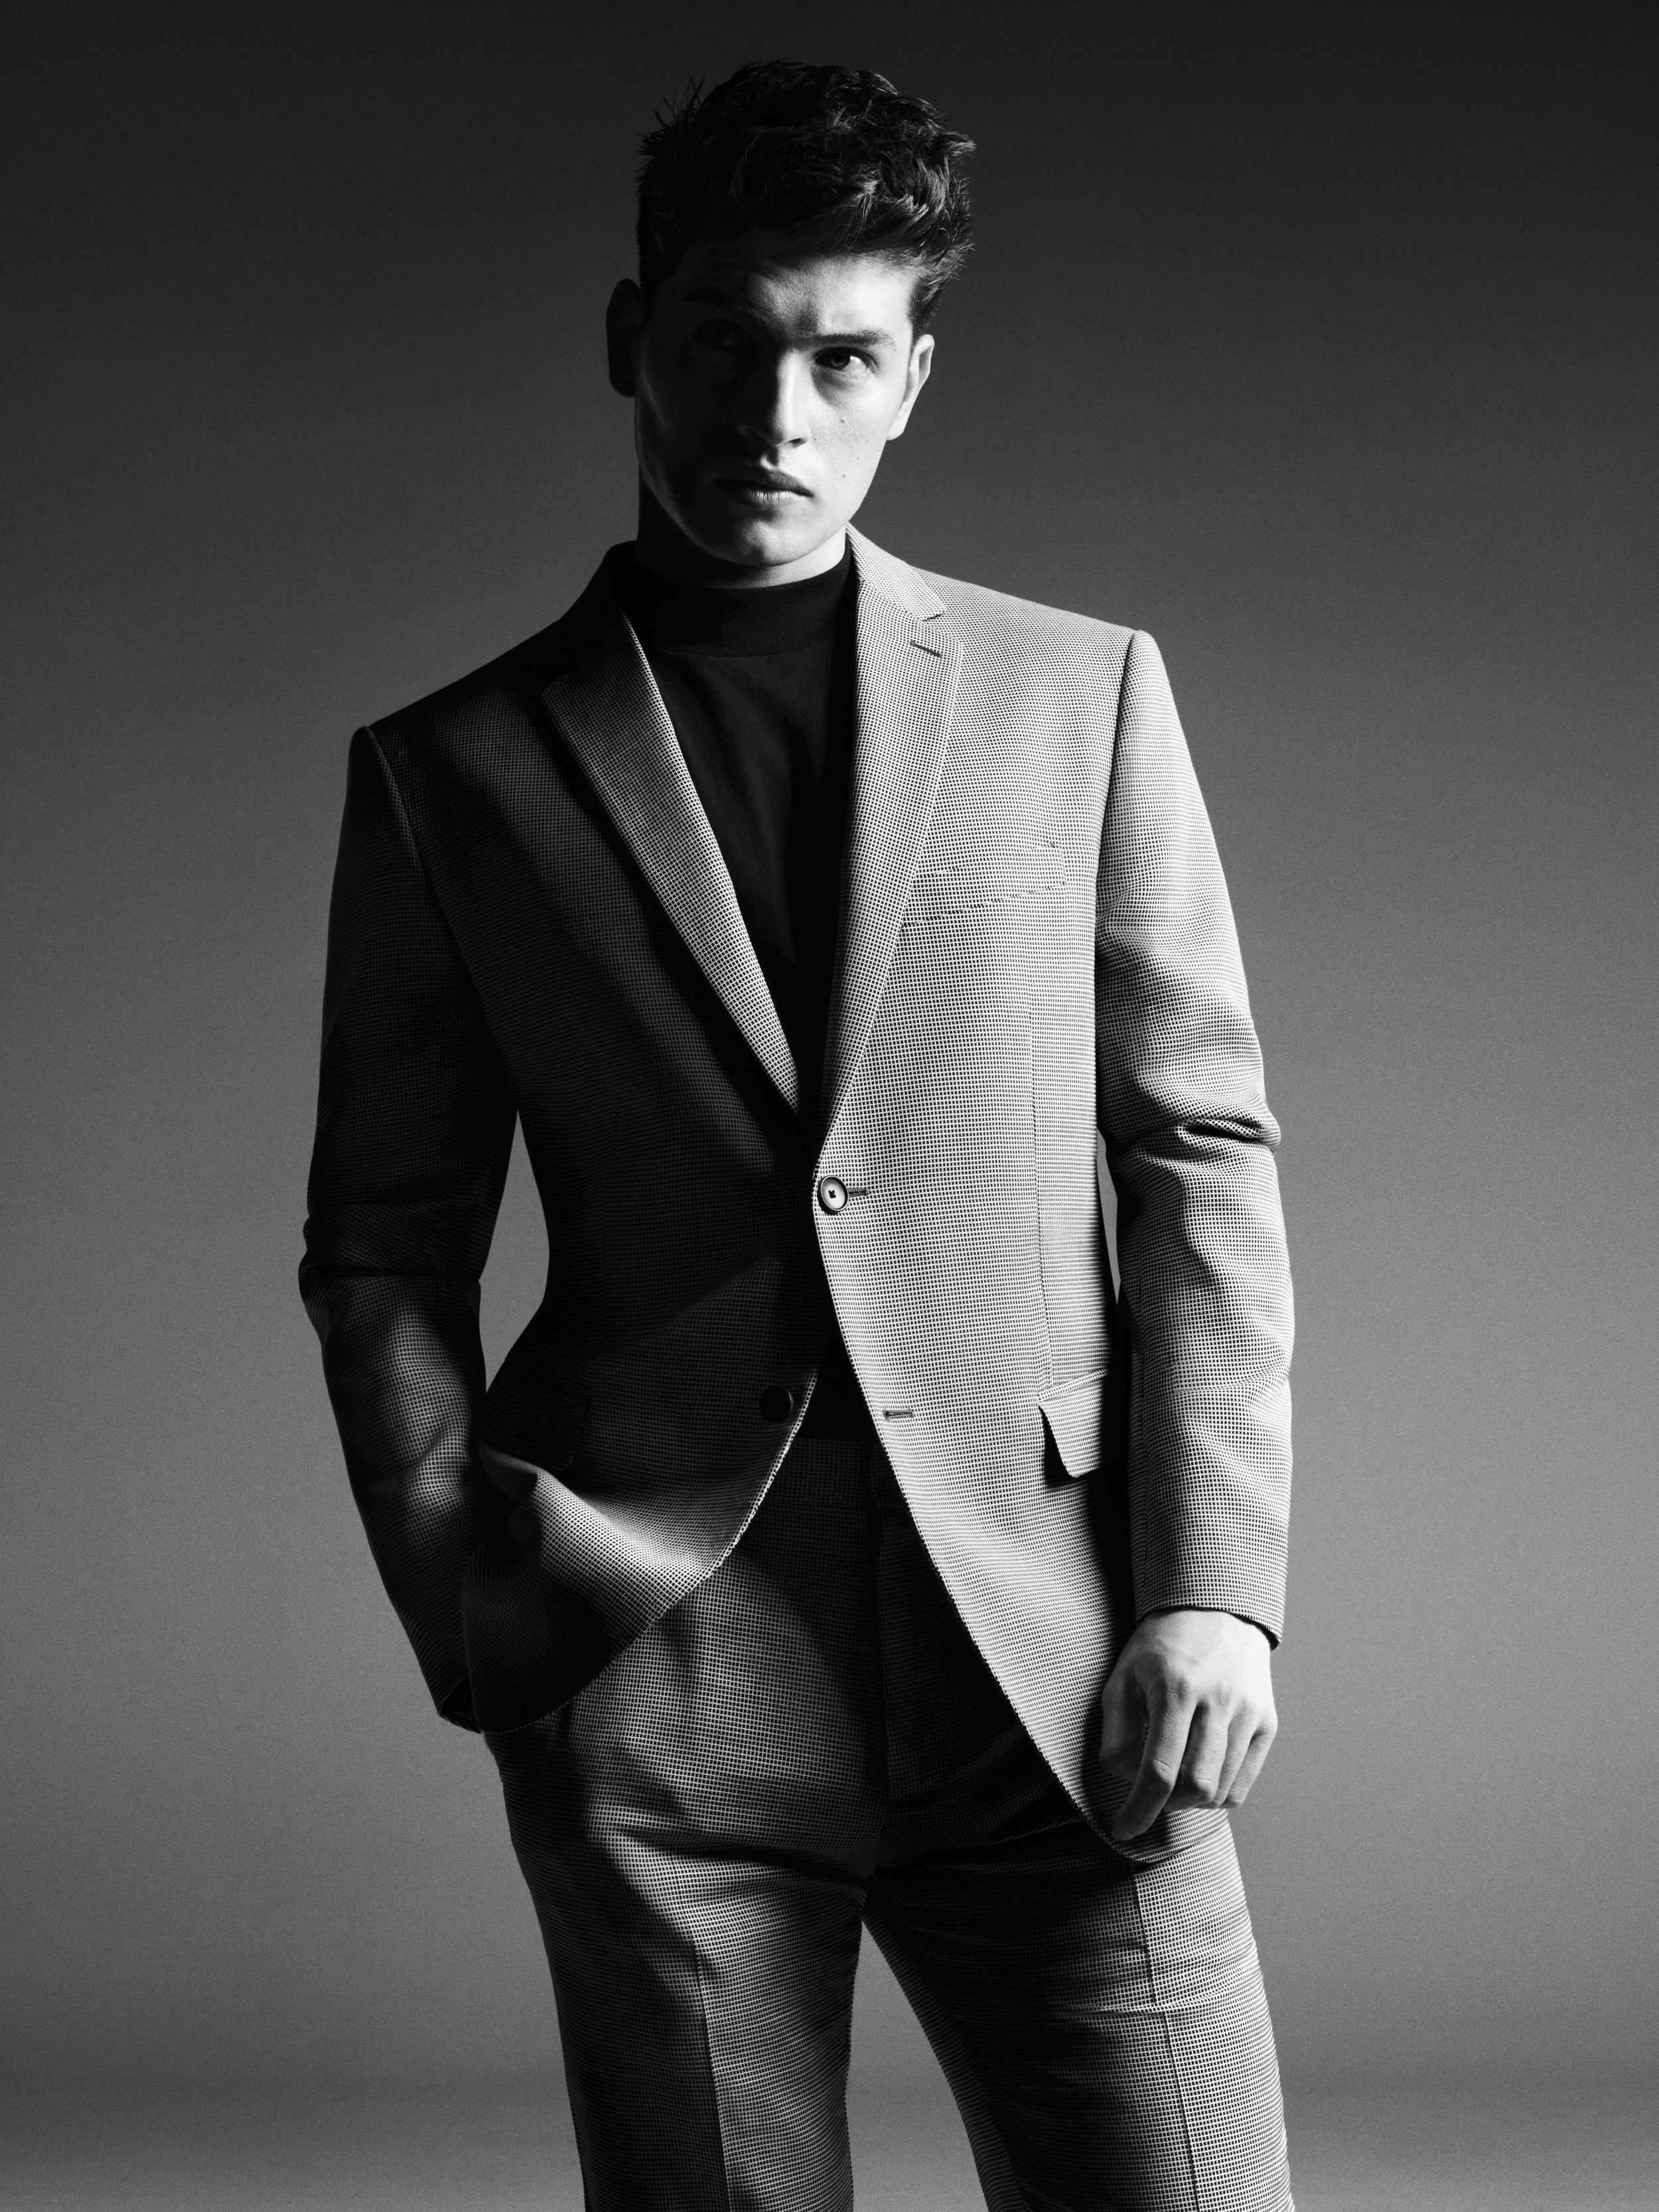 Suit by   THEORY  , Shirt by   CALVIN KLEIN COLLECTION  .